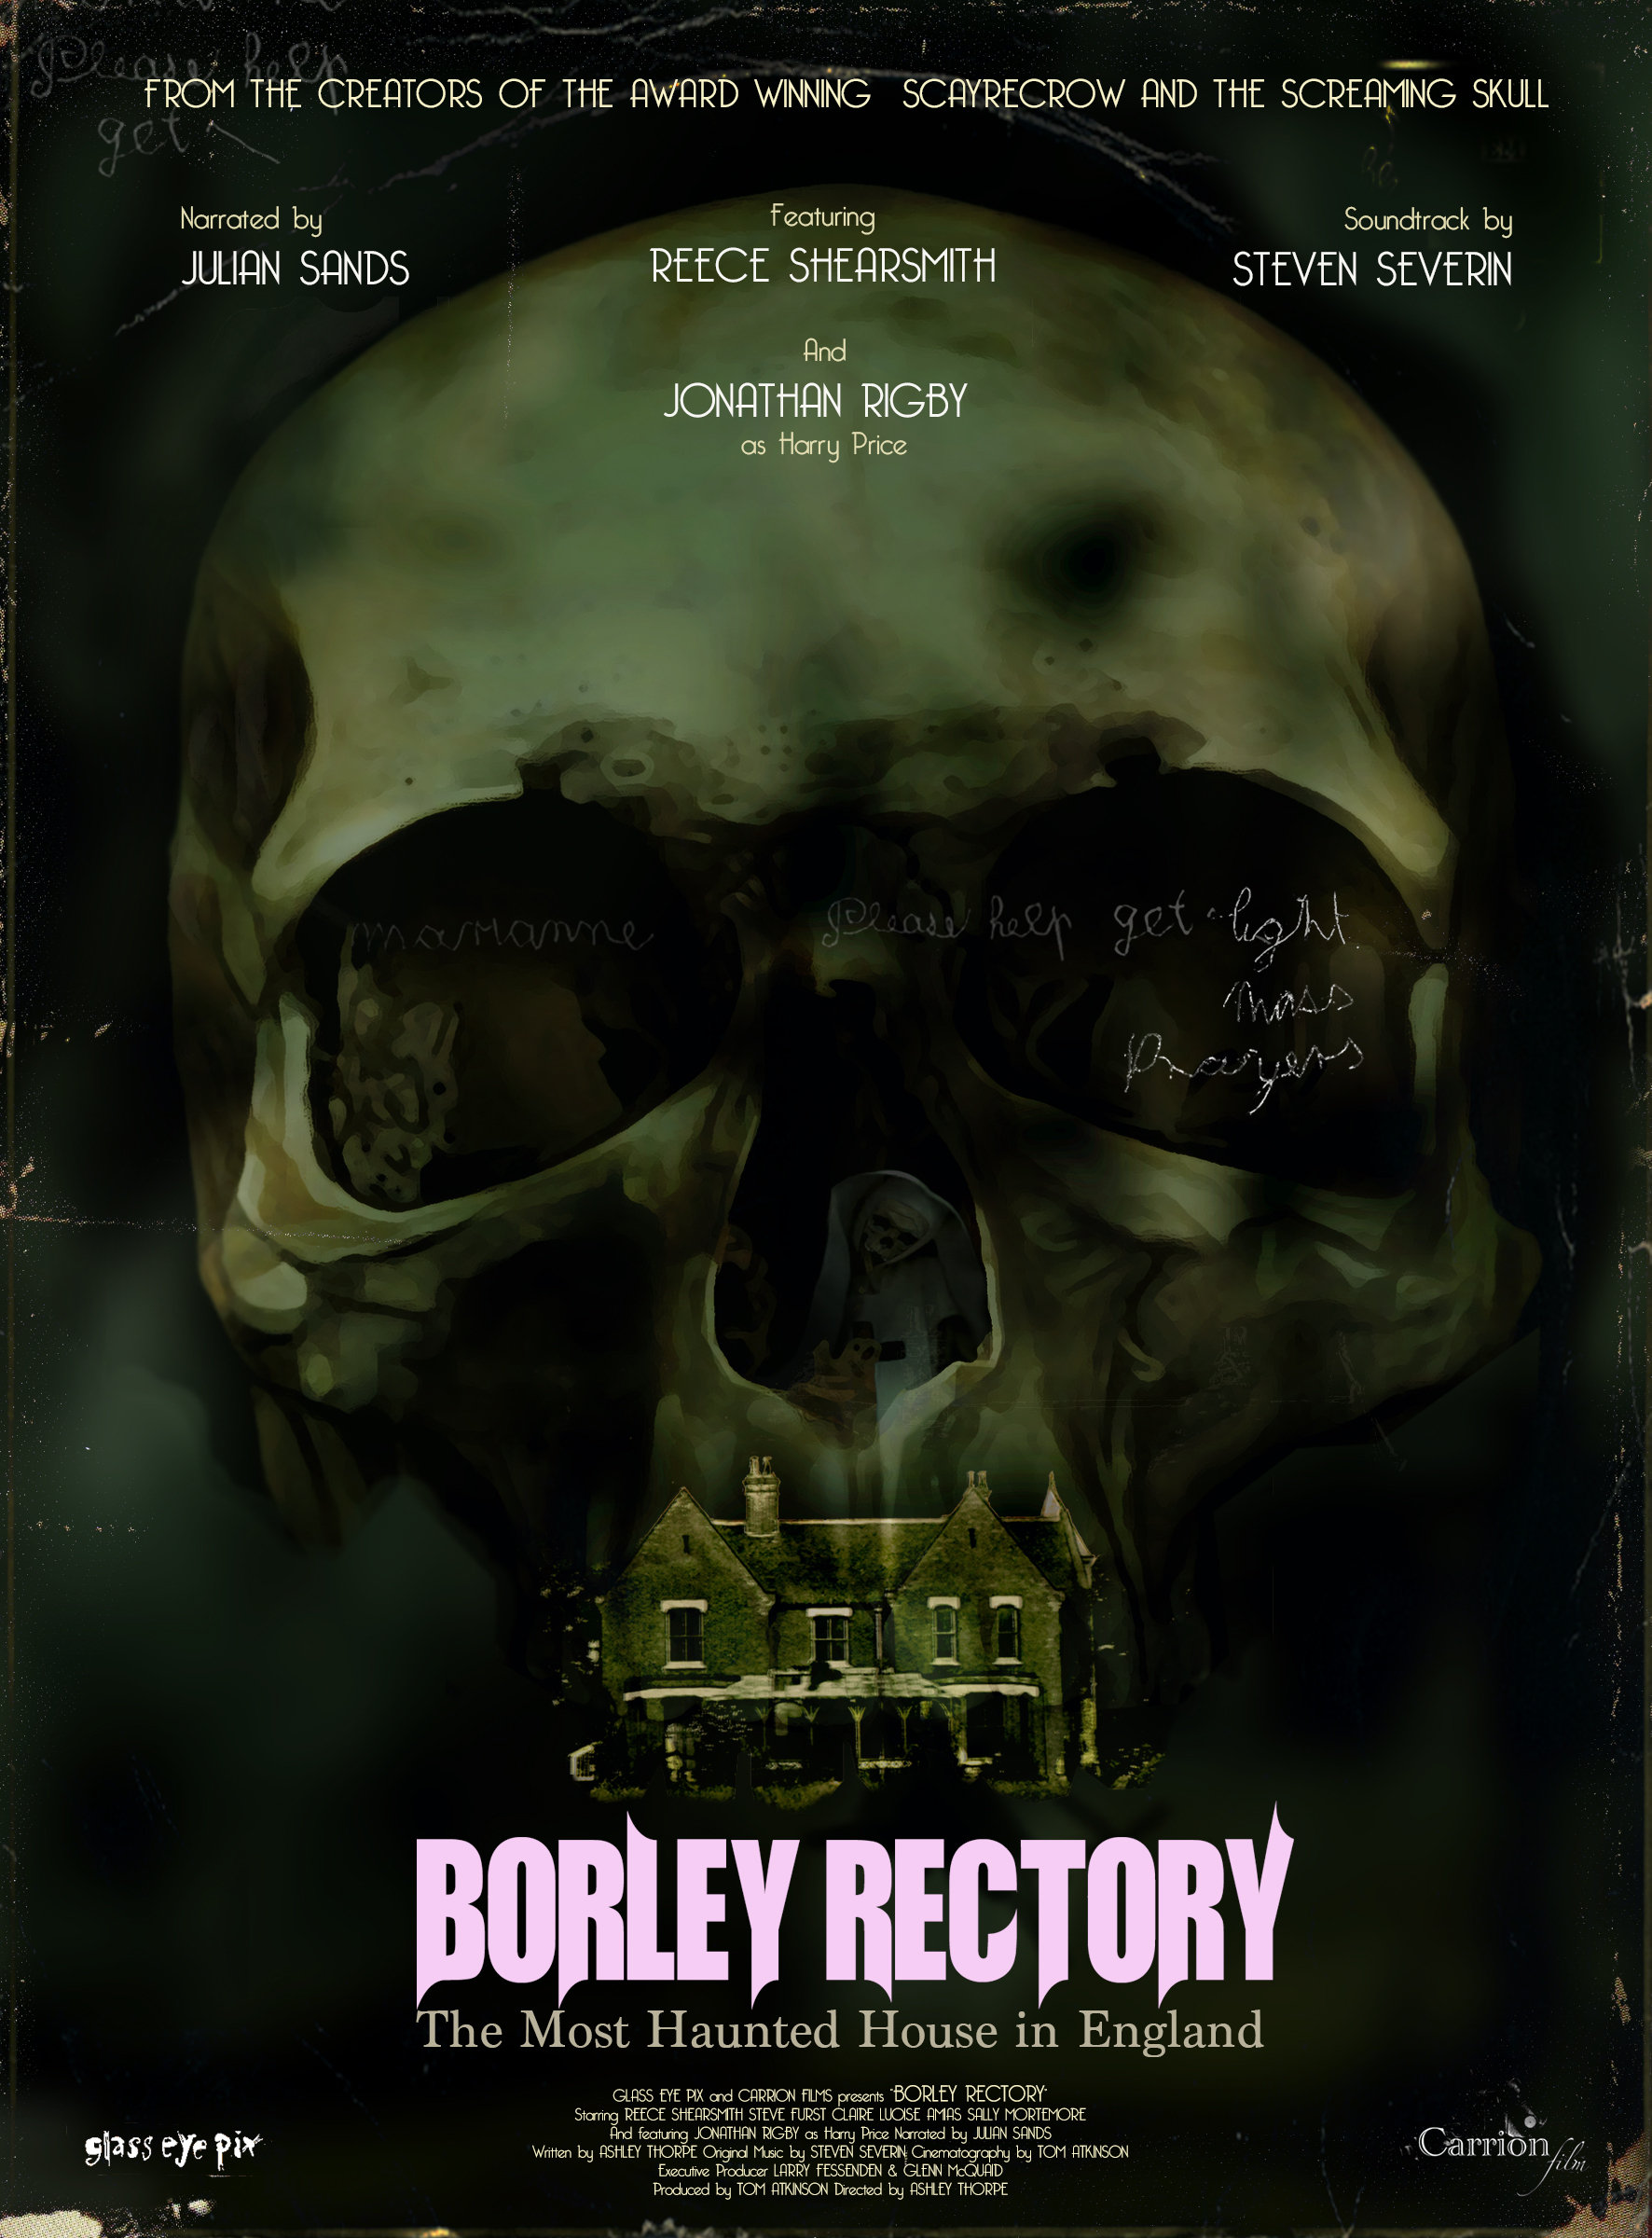 borley rectory film